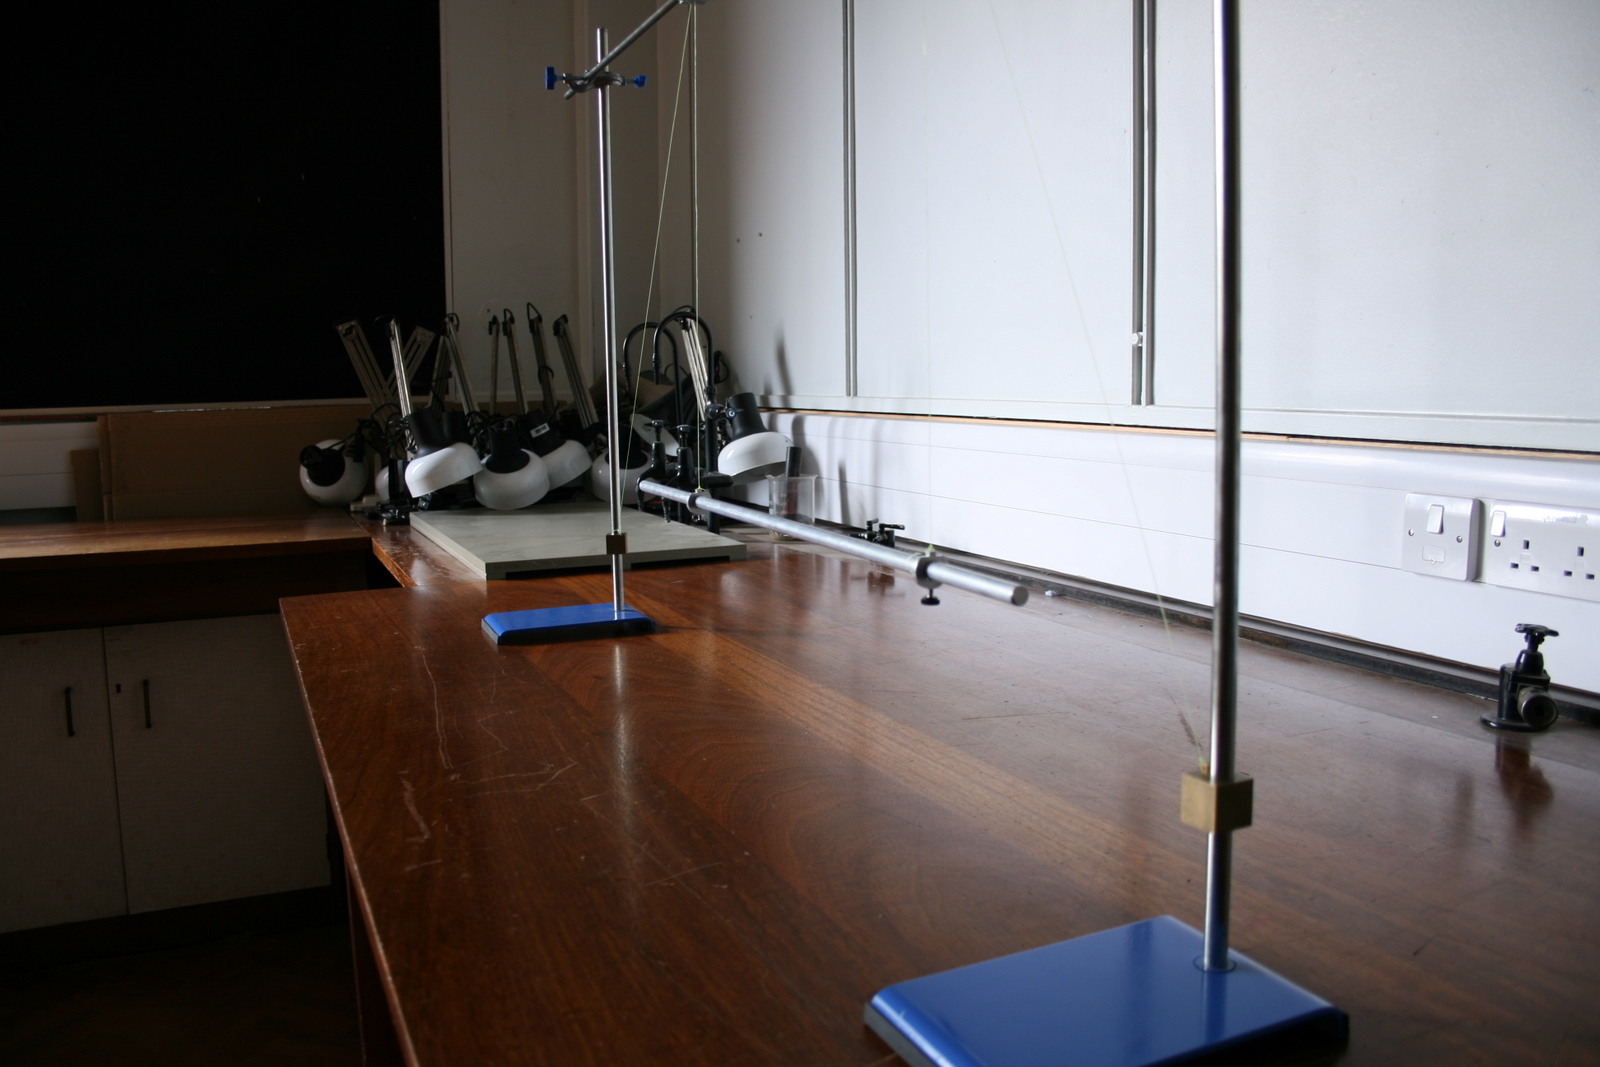 physics bifilar pendulum A simple pendulum is composed of a weight, or bob, hanging freely from the end of a string or bar gravity pulls the bob in a downward arc, causing it to swing.